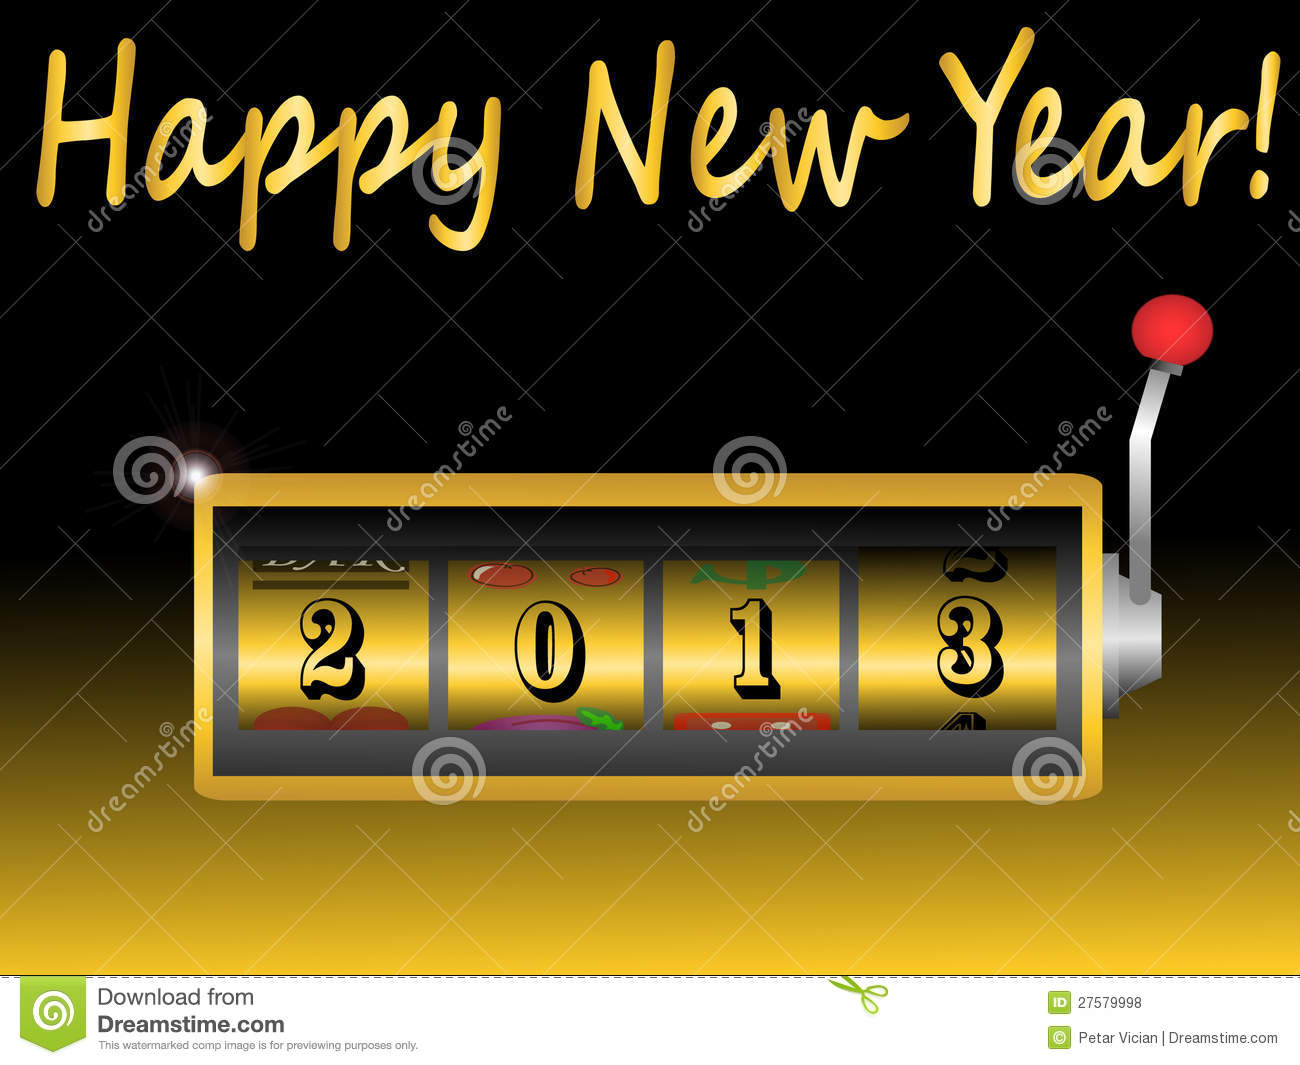 Royalty Free Stock Photos: New year 2013 in slot machine